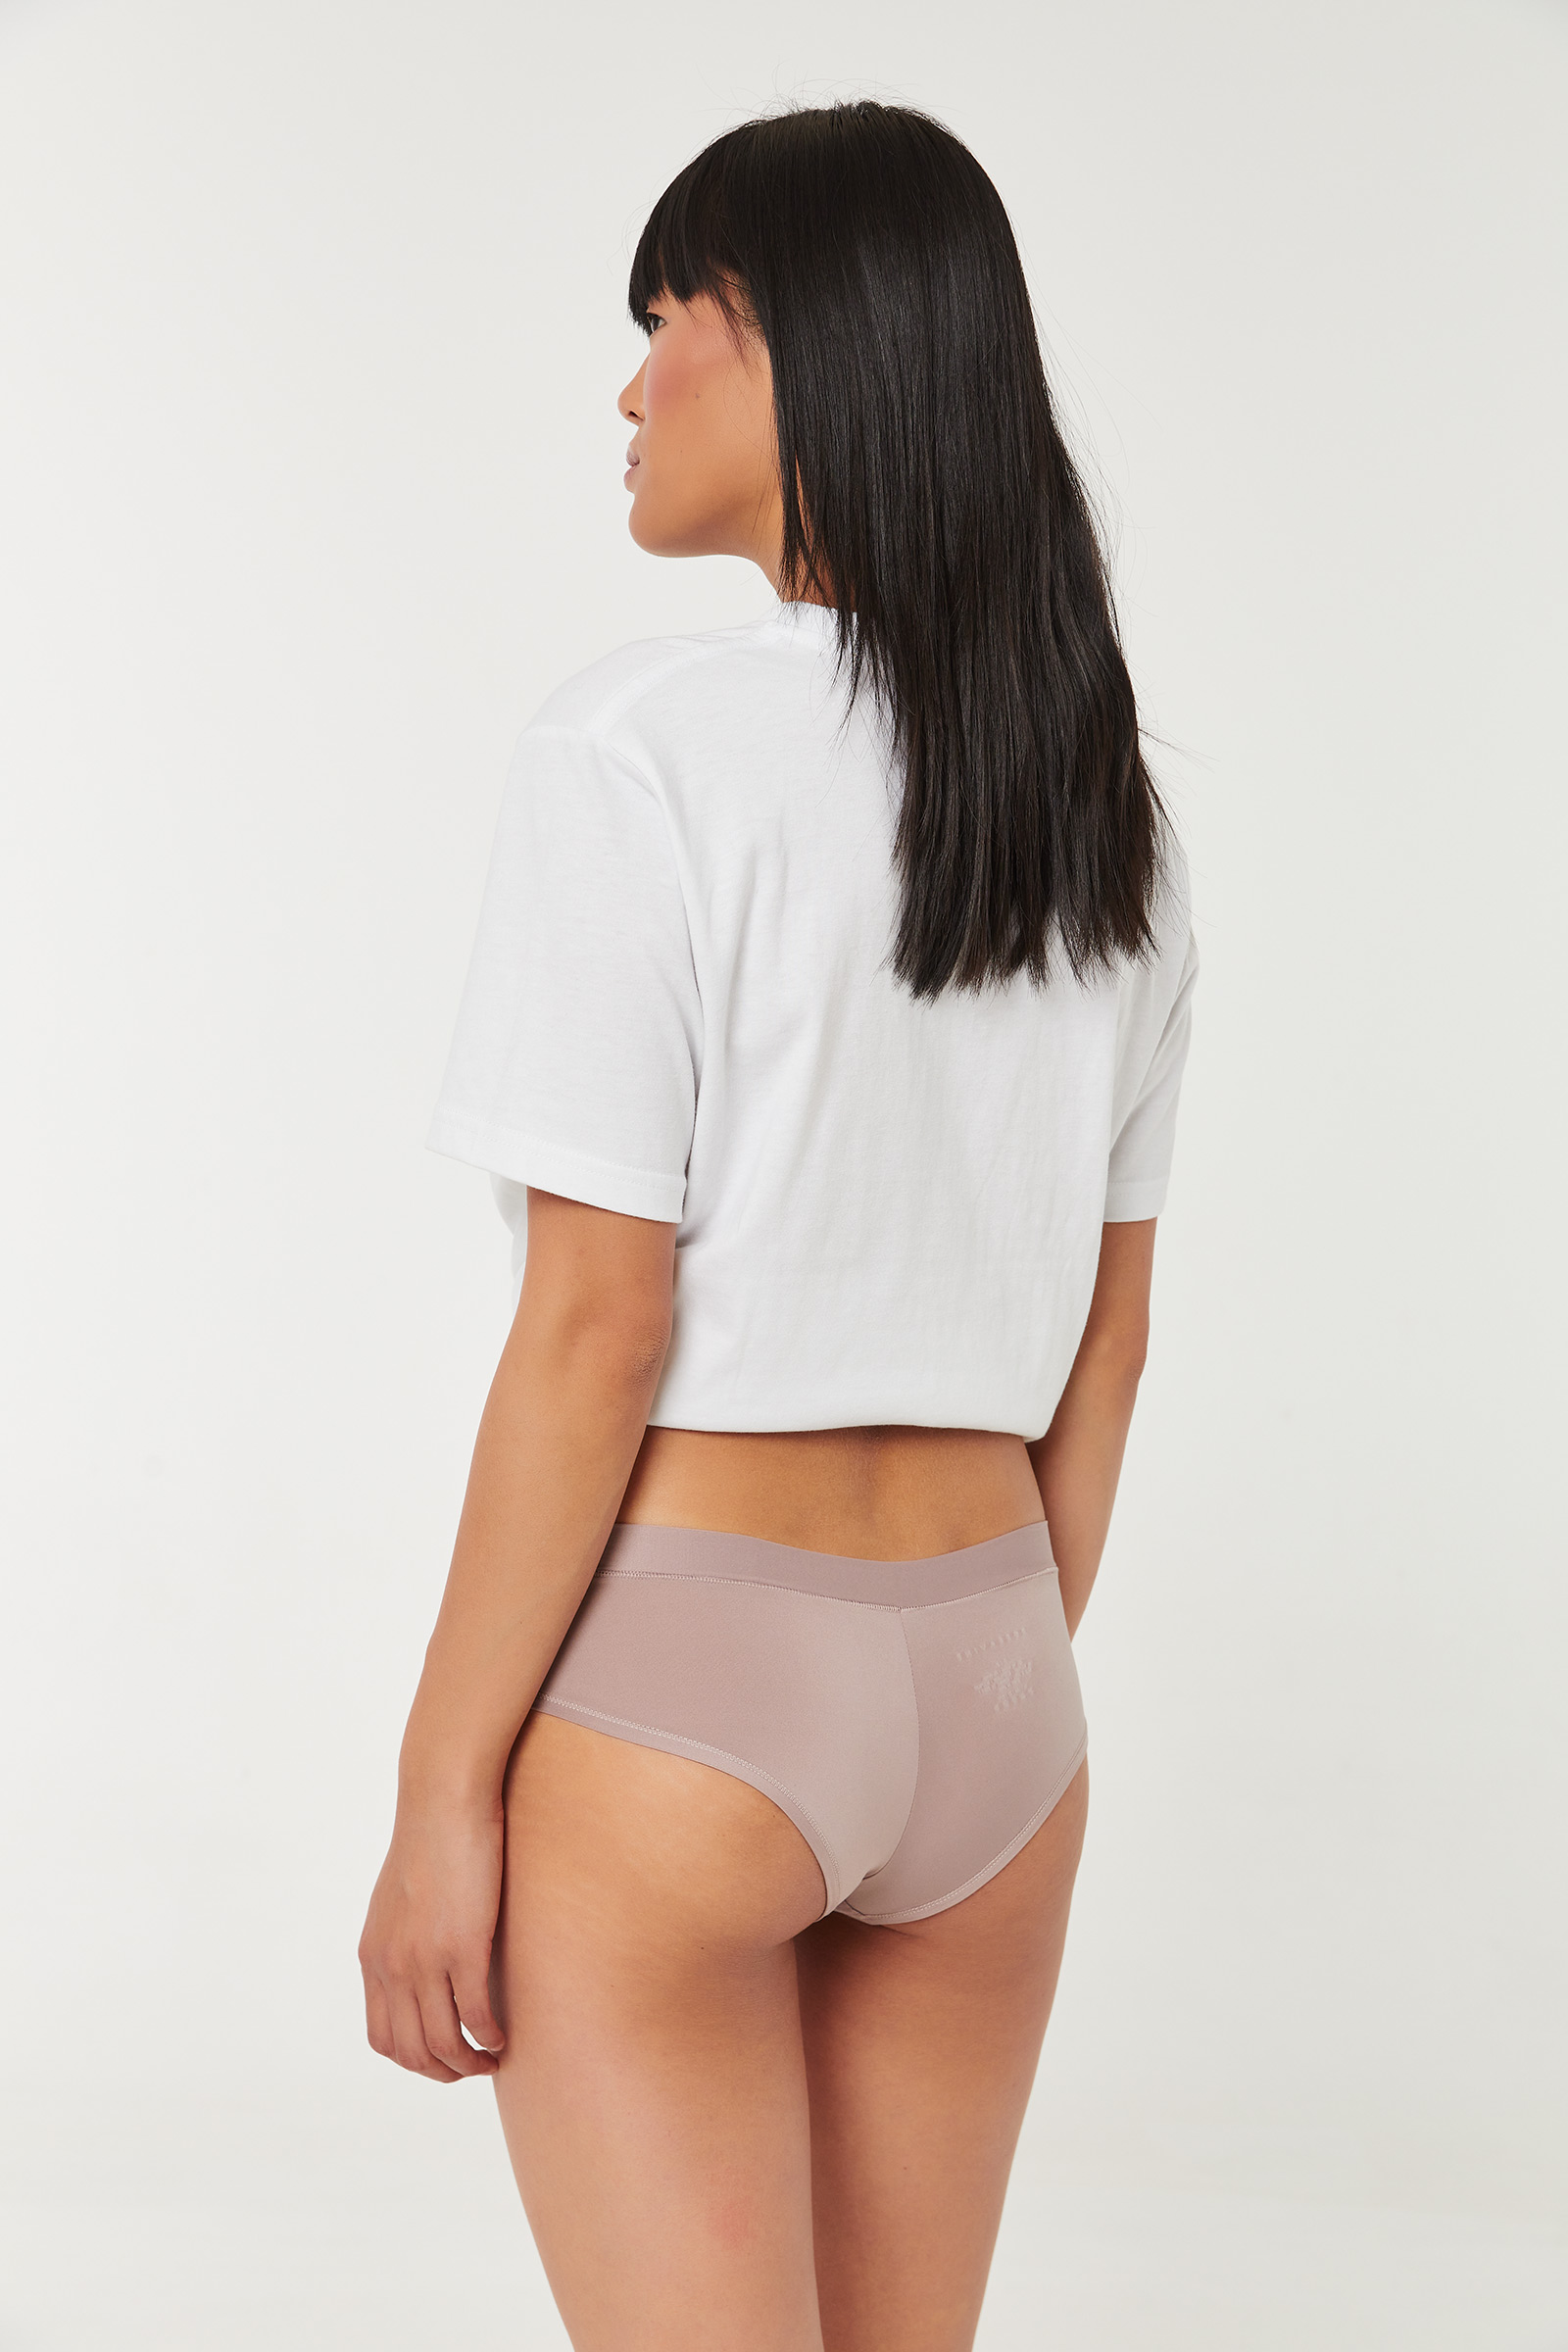 Soft Touch Cheeky Panty